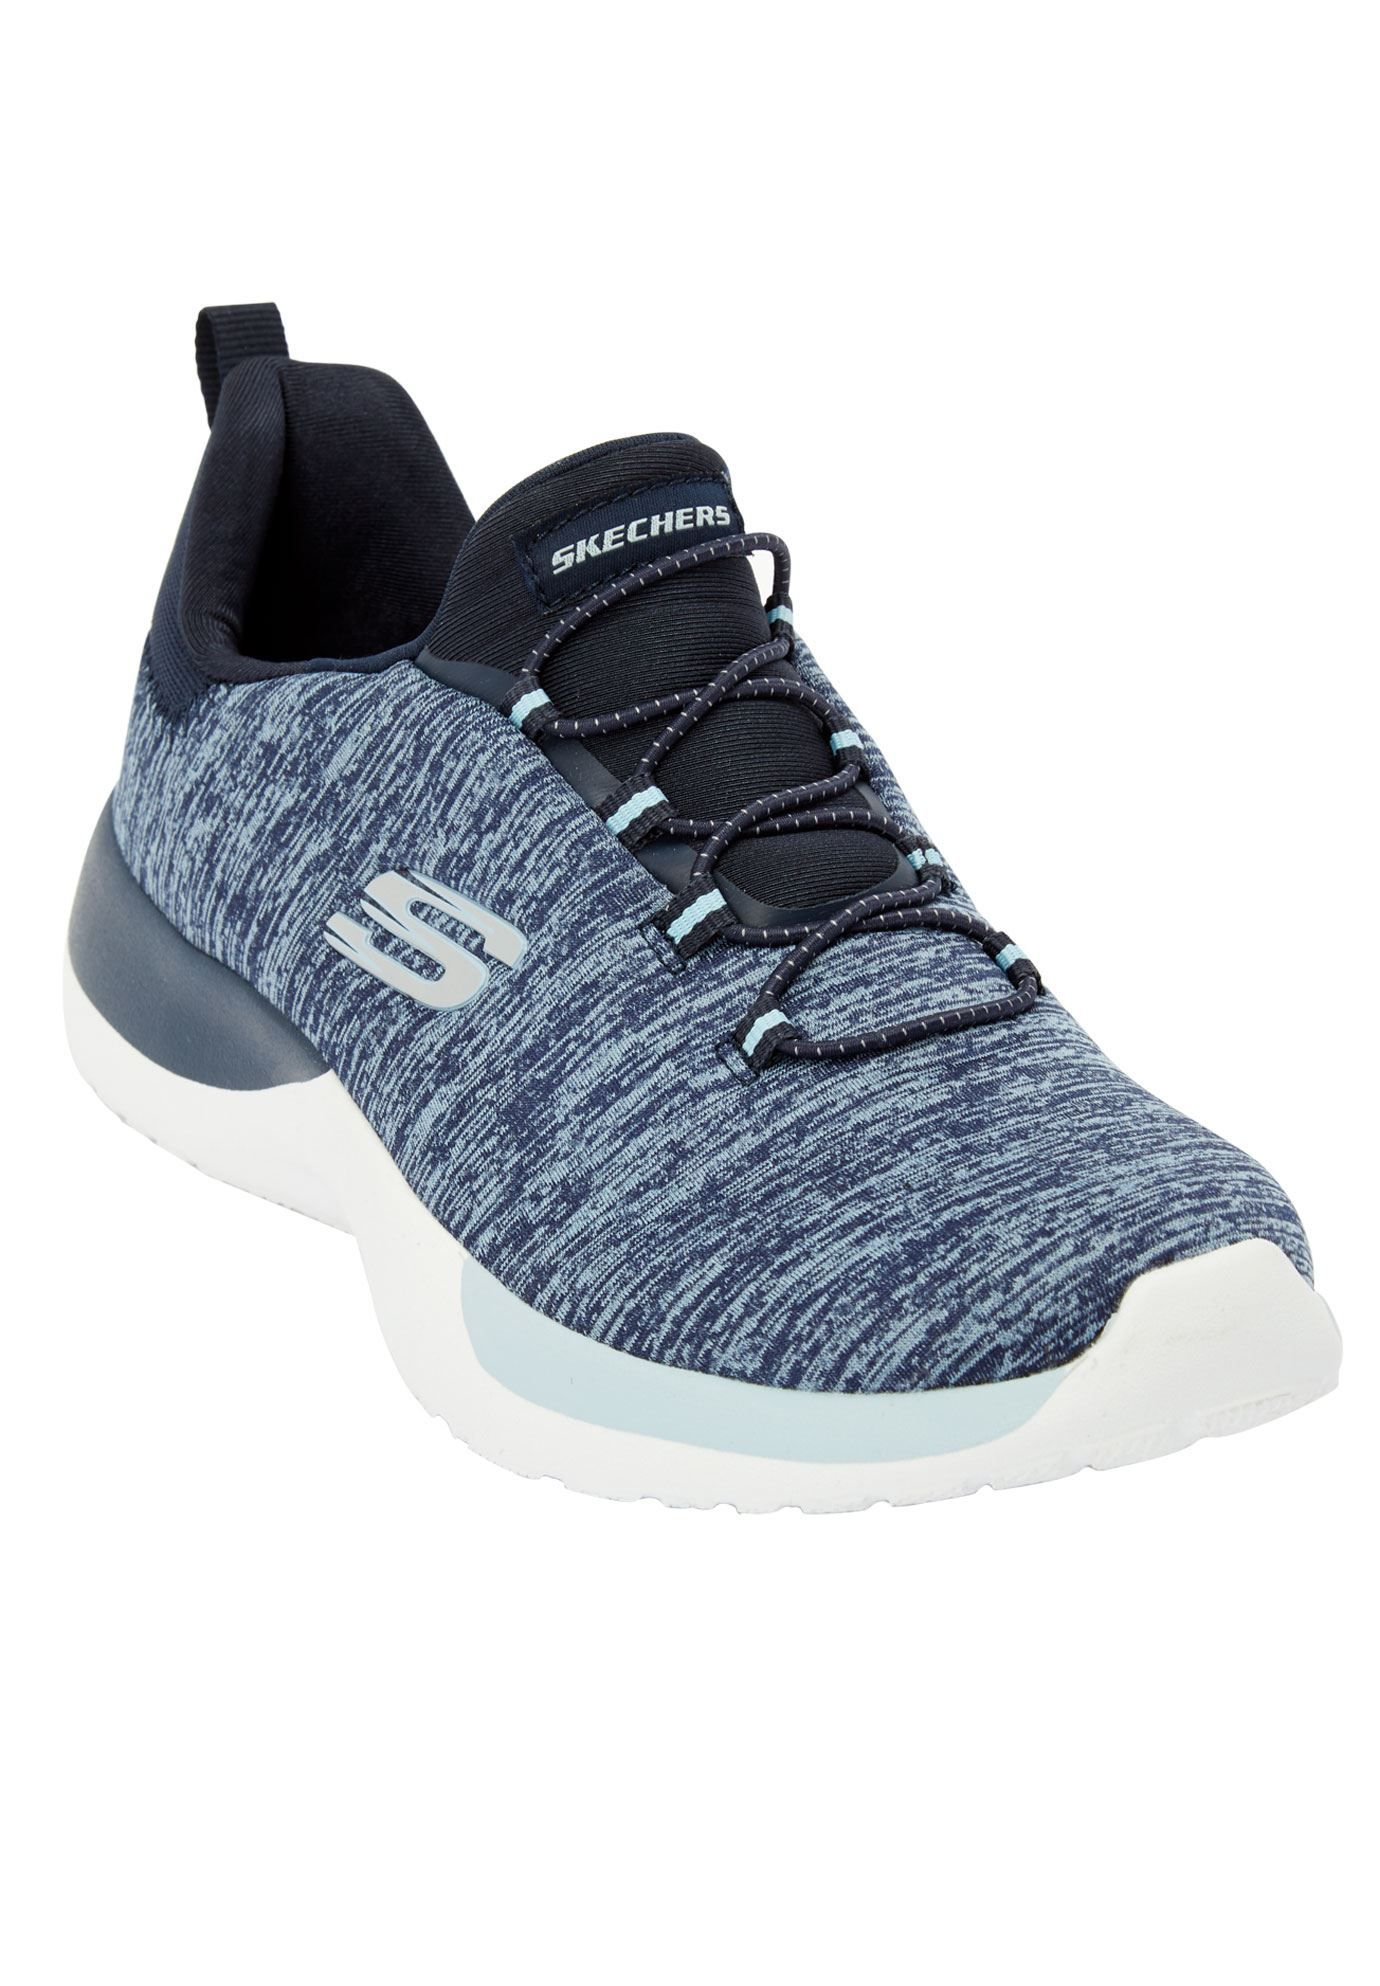 8bc4cbb9b02 The Dynamight Break Through Sneaker by Skechers - Women s Plus Size Clothing